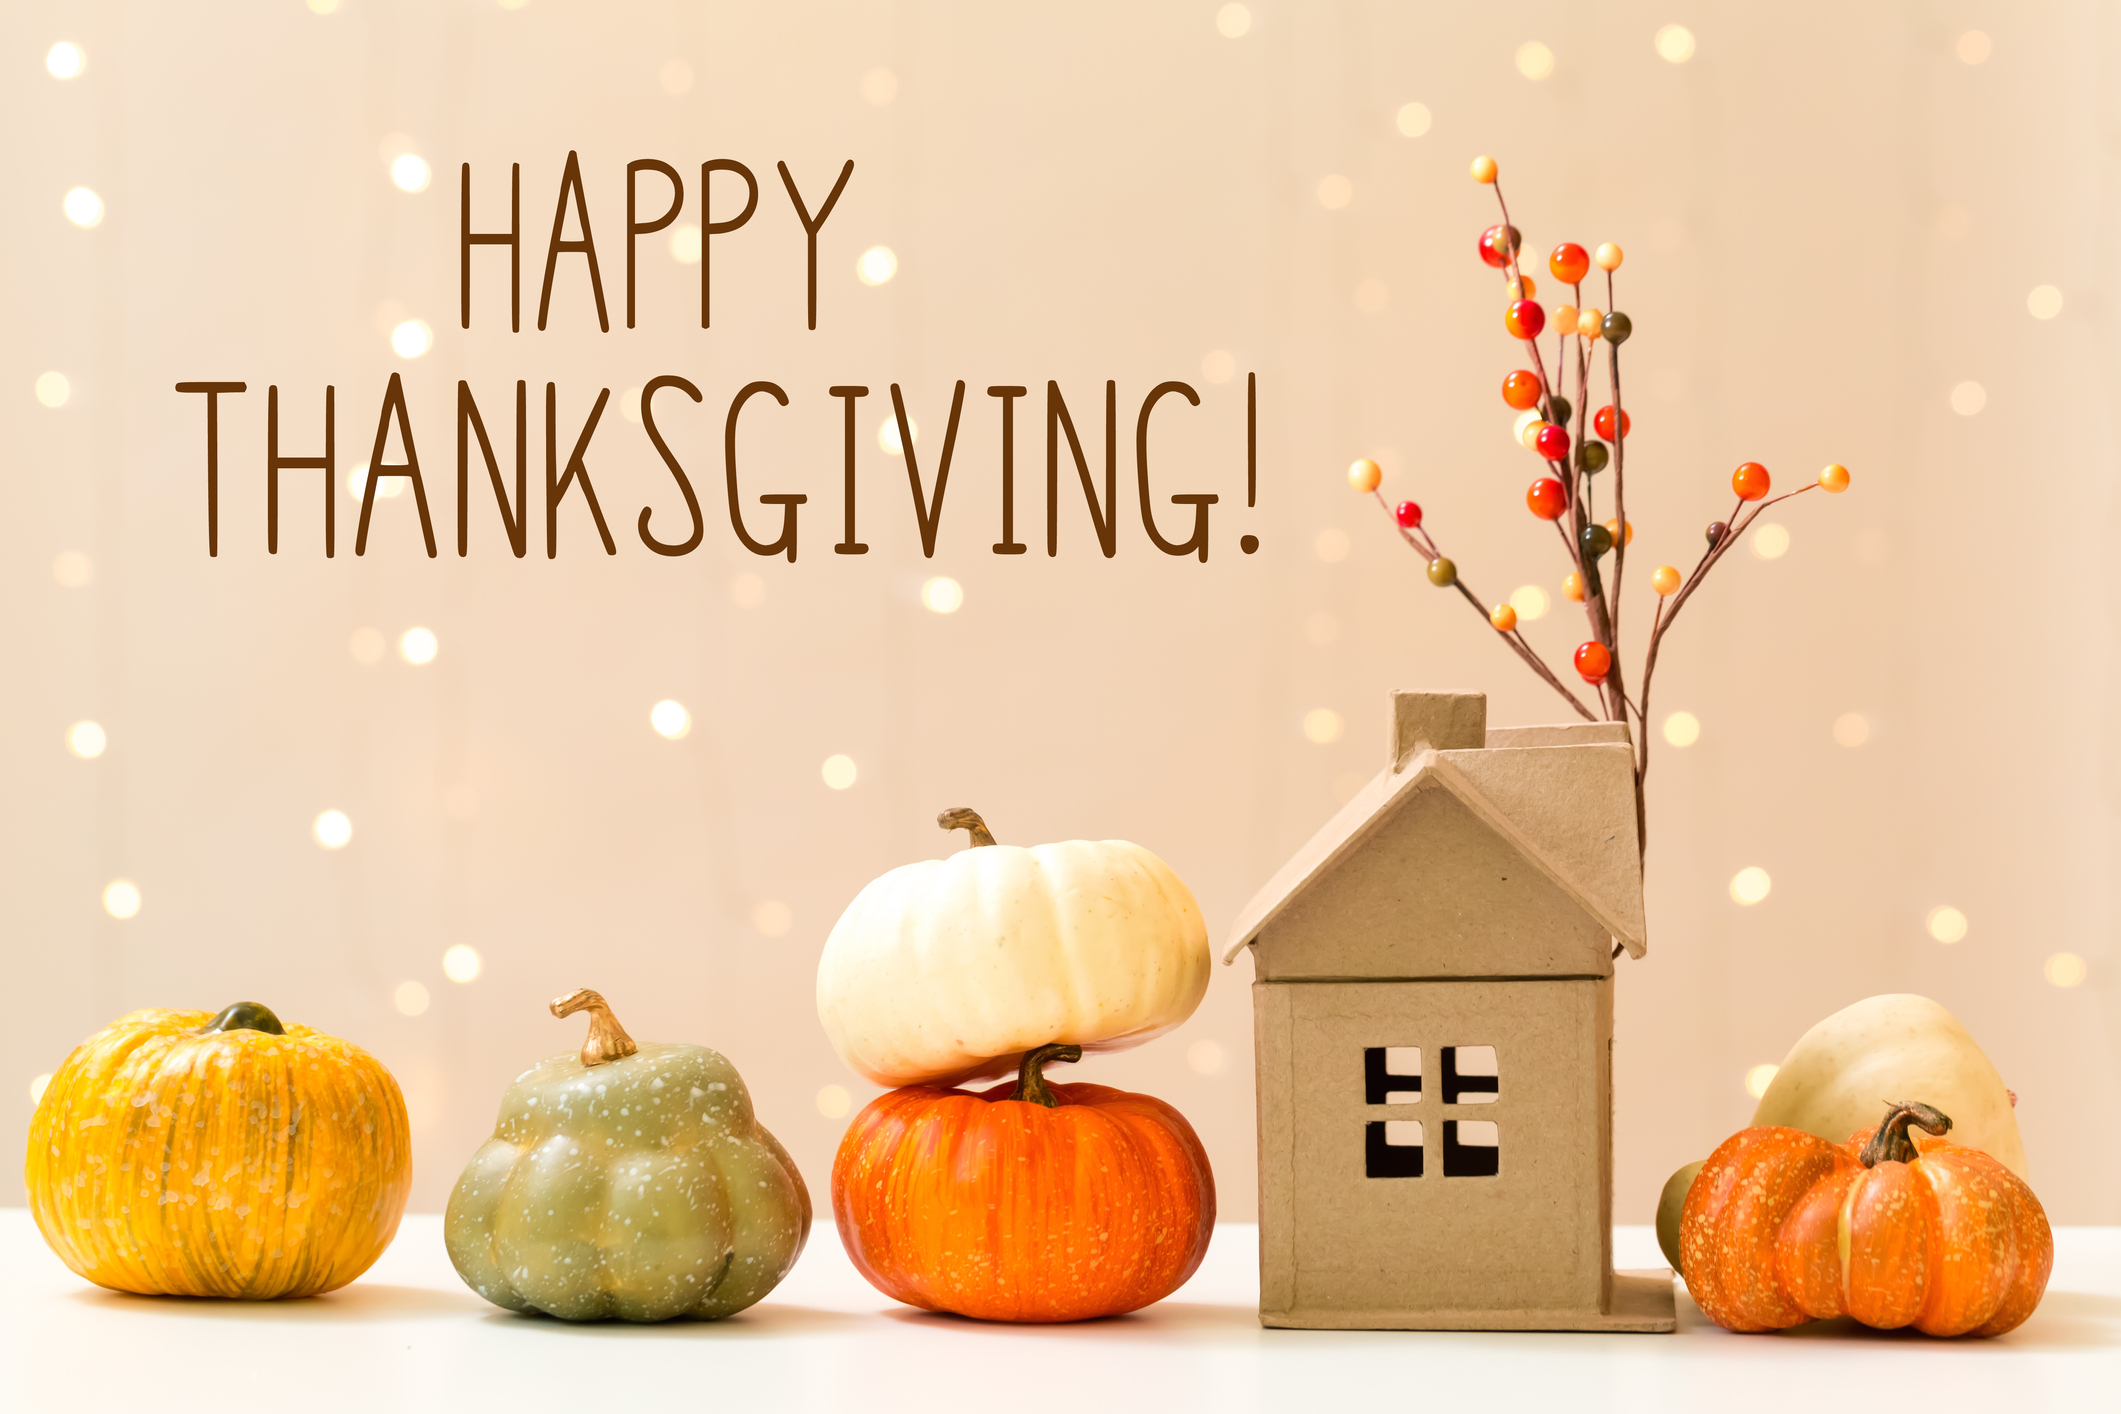 Happy Thanksgiving 2018 to Kitsap County residents, friends, and family